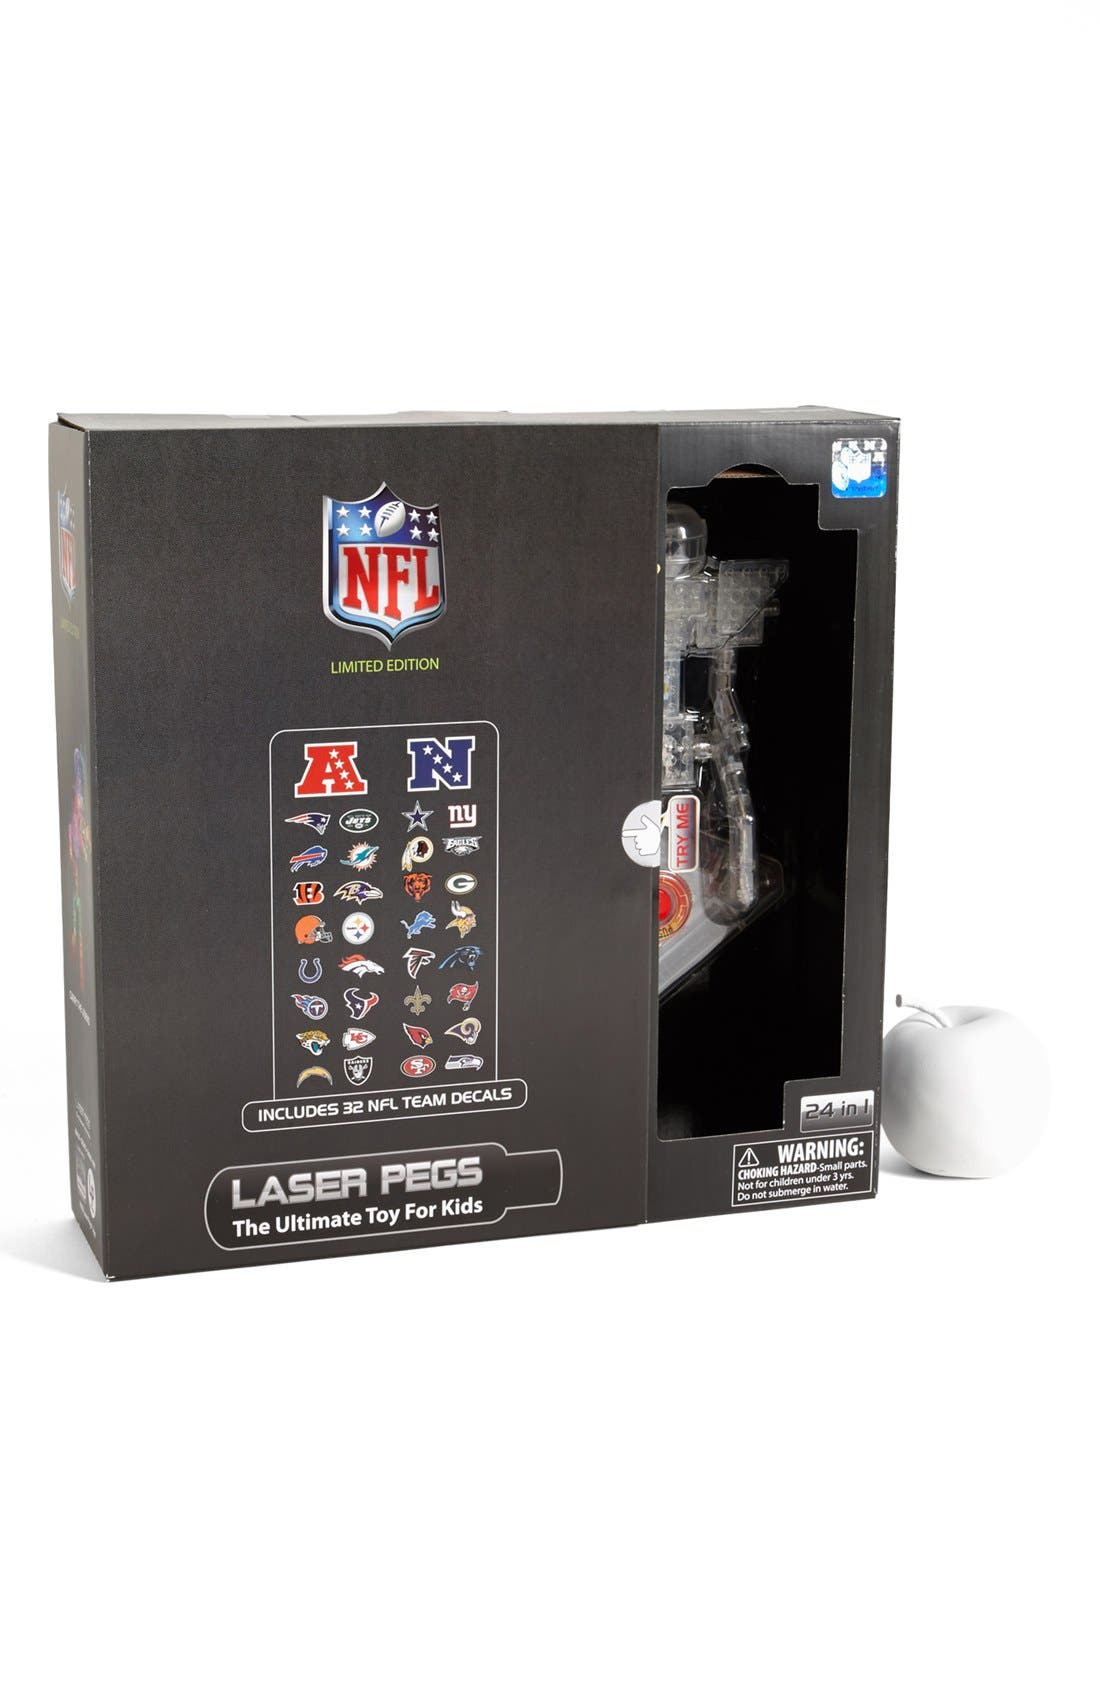 Alternate Image 1 Selected - Laser Pegs 'NFL' 24-in-1 Robot